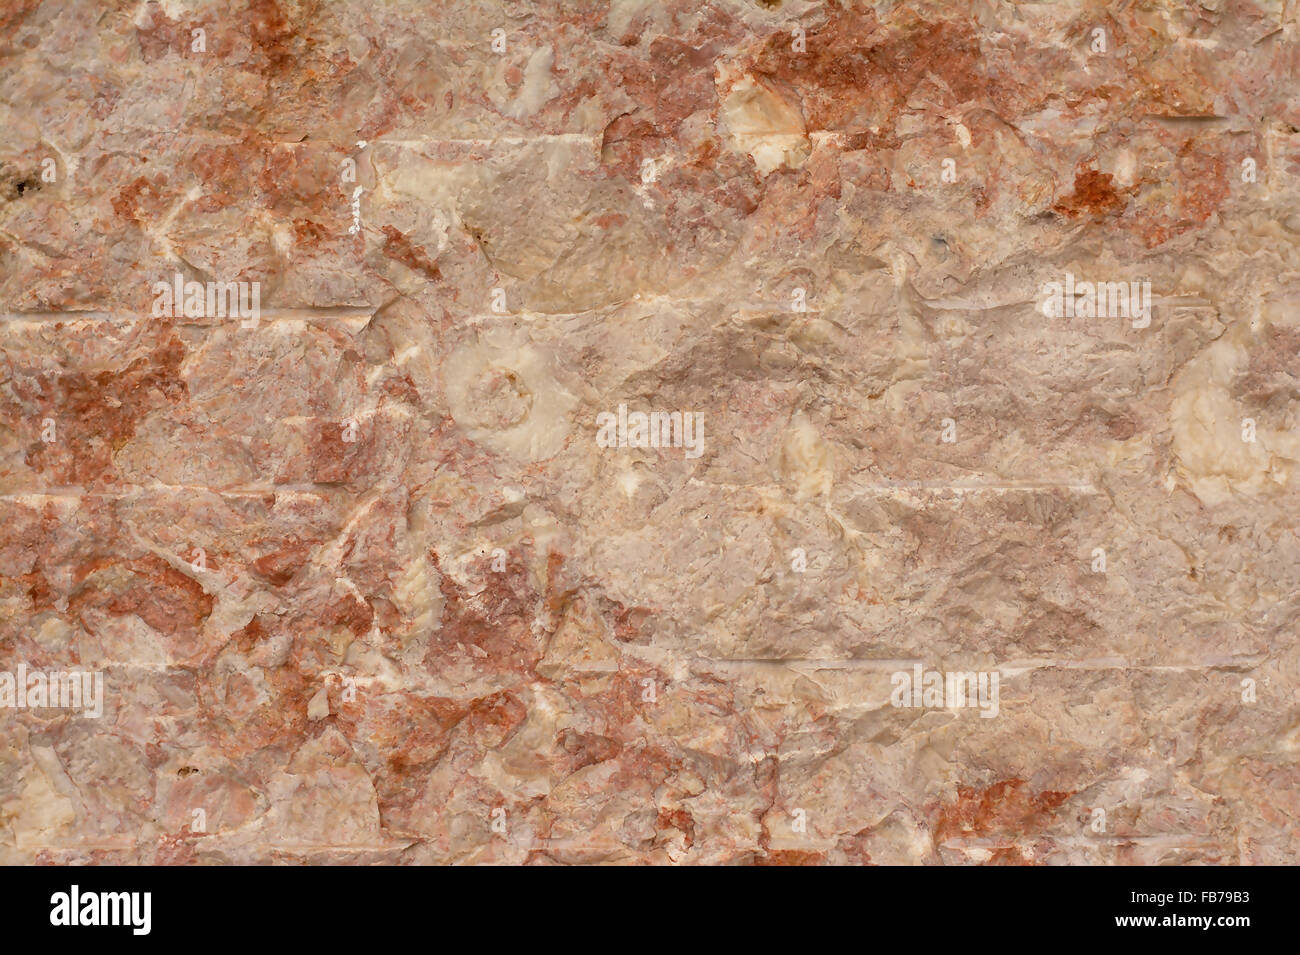 Rough Texture Background: Gritty Texture Stock Photos & Gritty Texture Stock Images